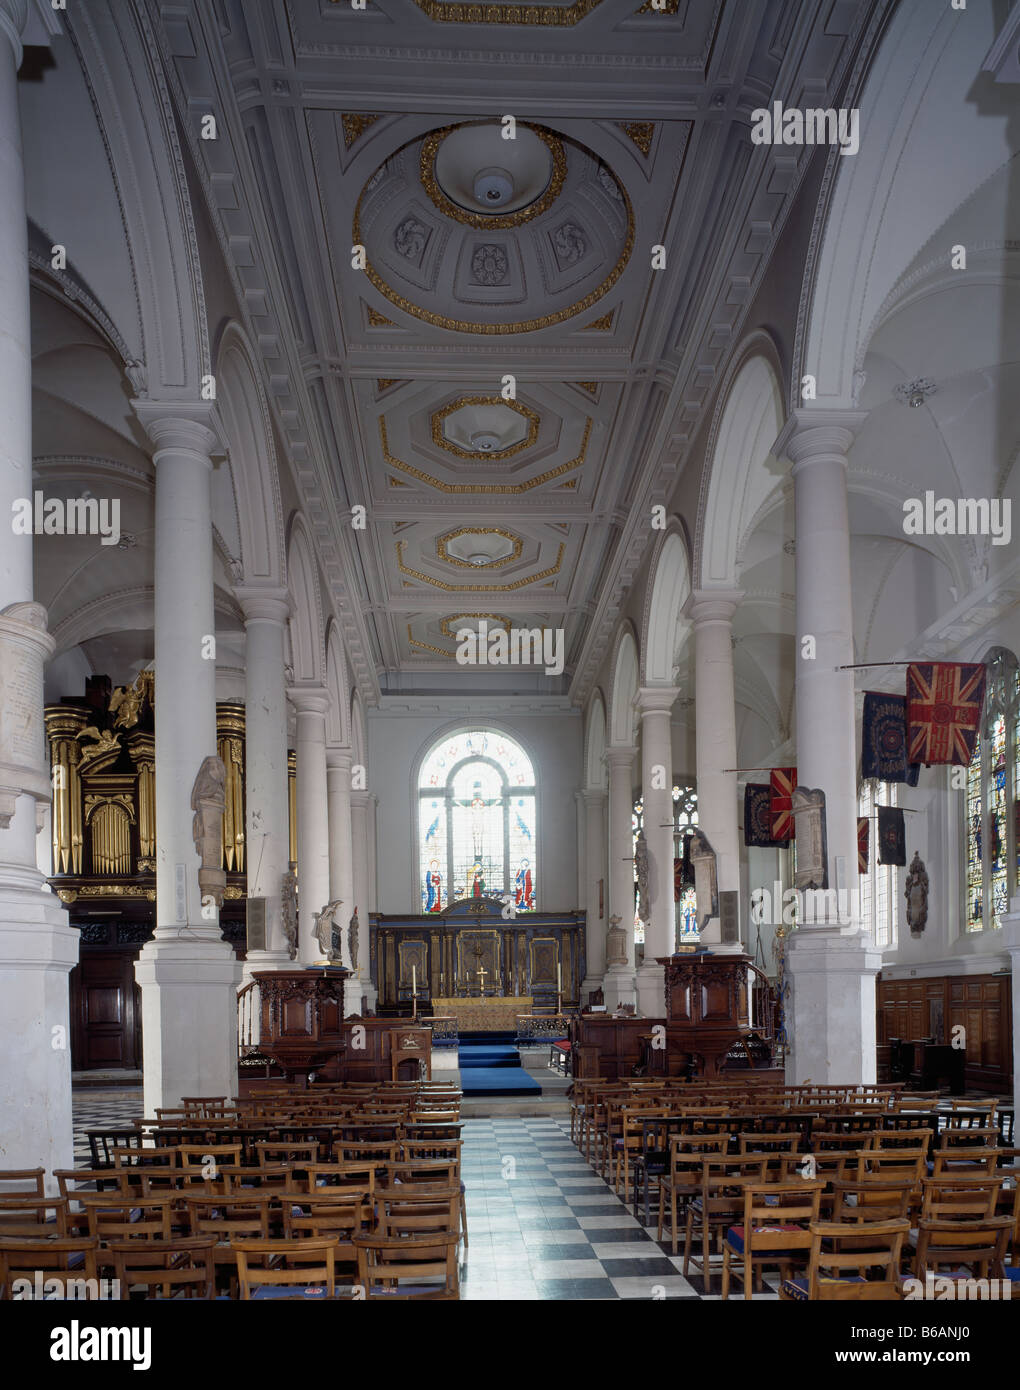 St Sepulchre Without Newgate - Stock Image